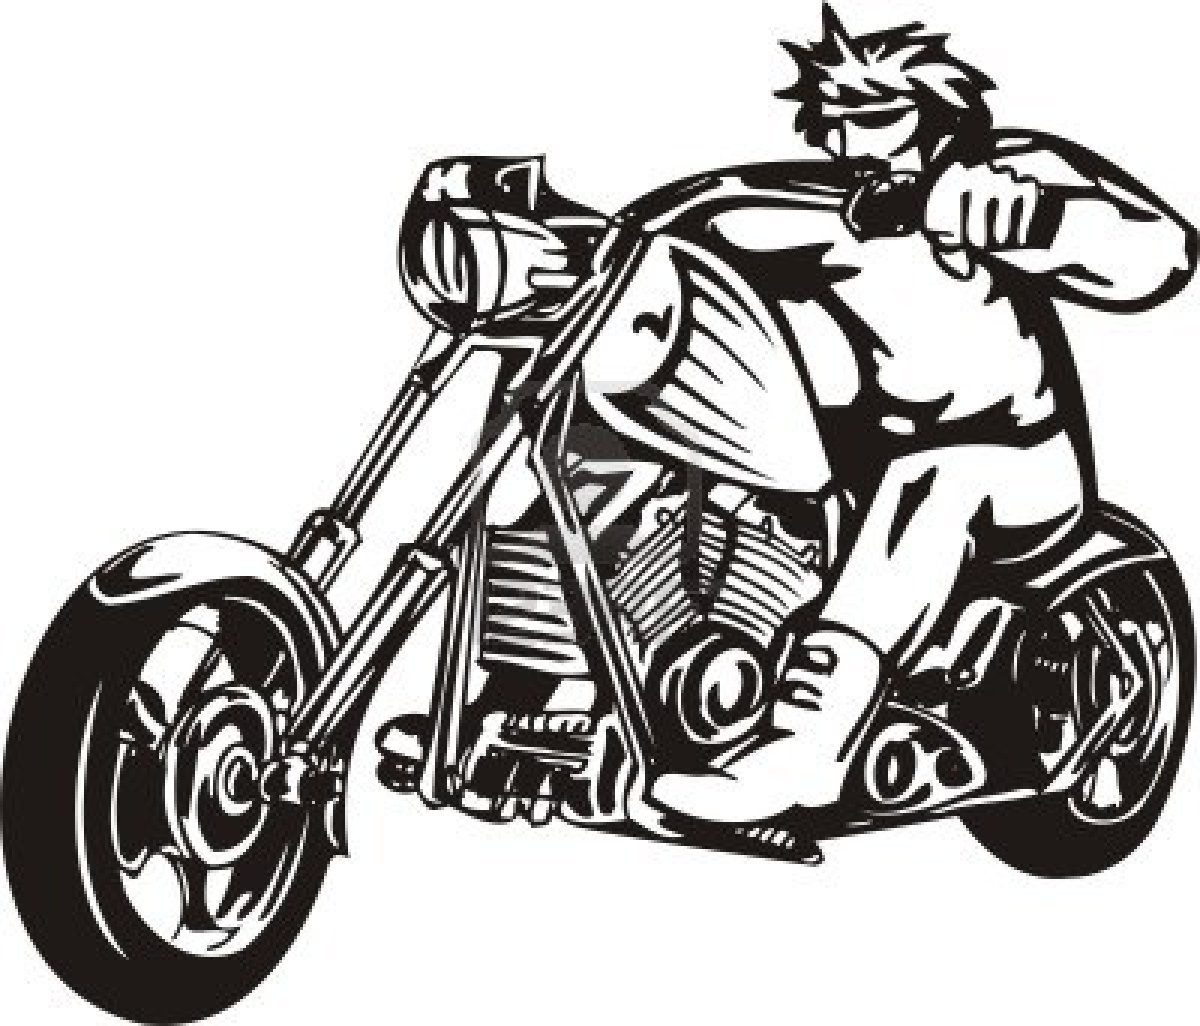 Motorcycle clipart cool motorcycle. Black and white harley